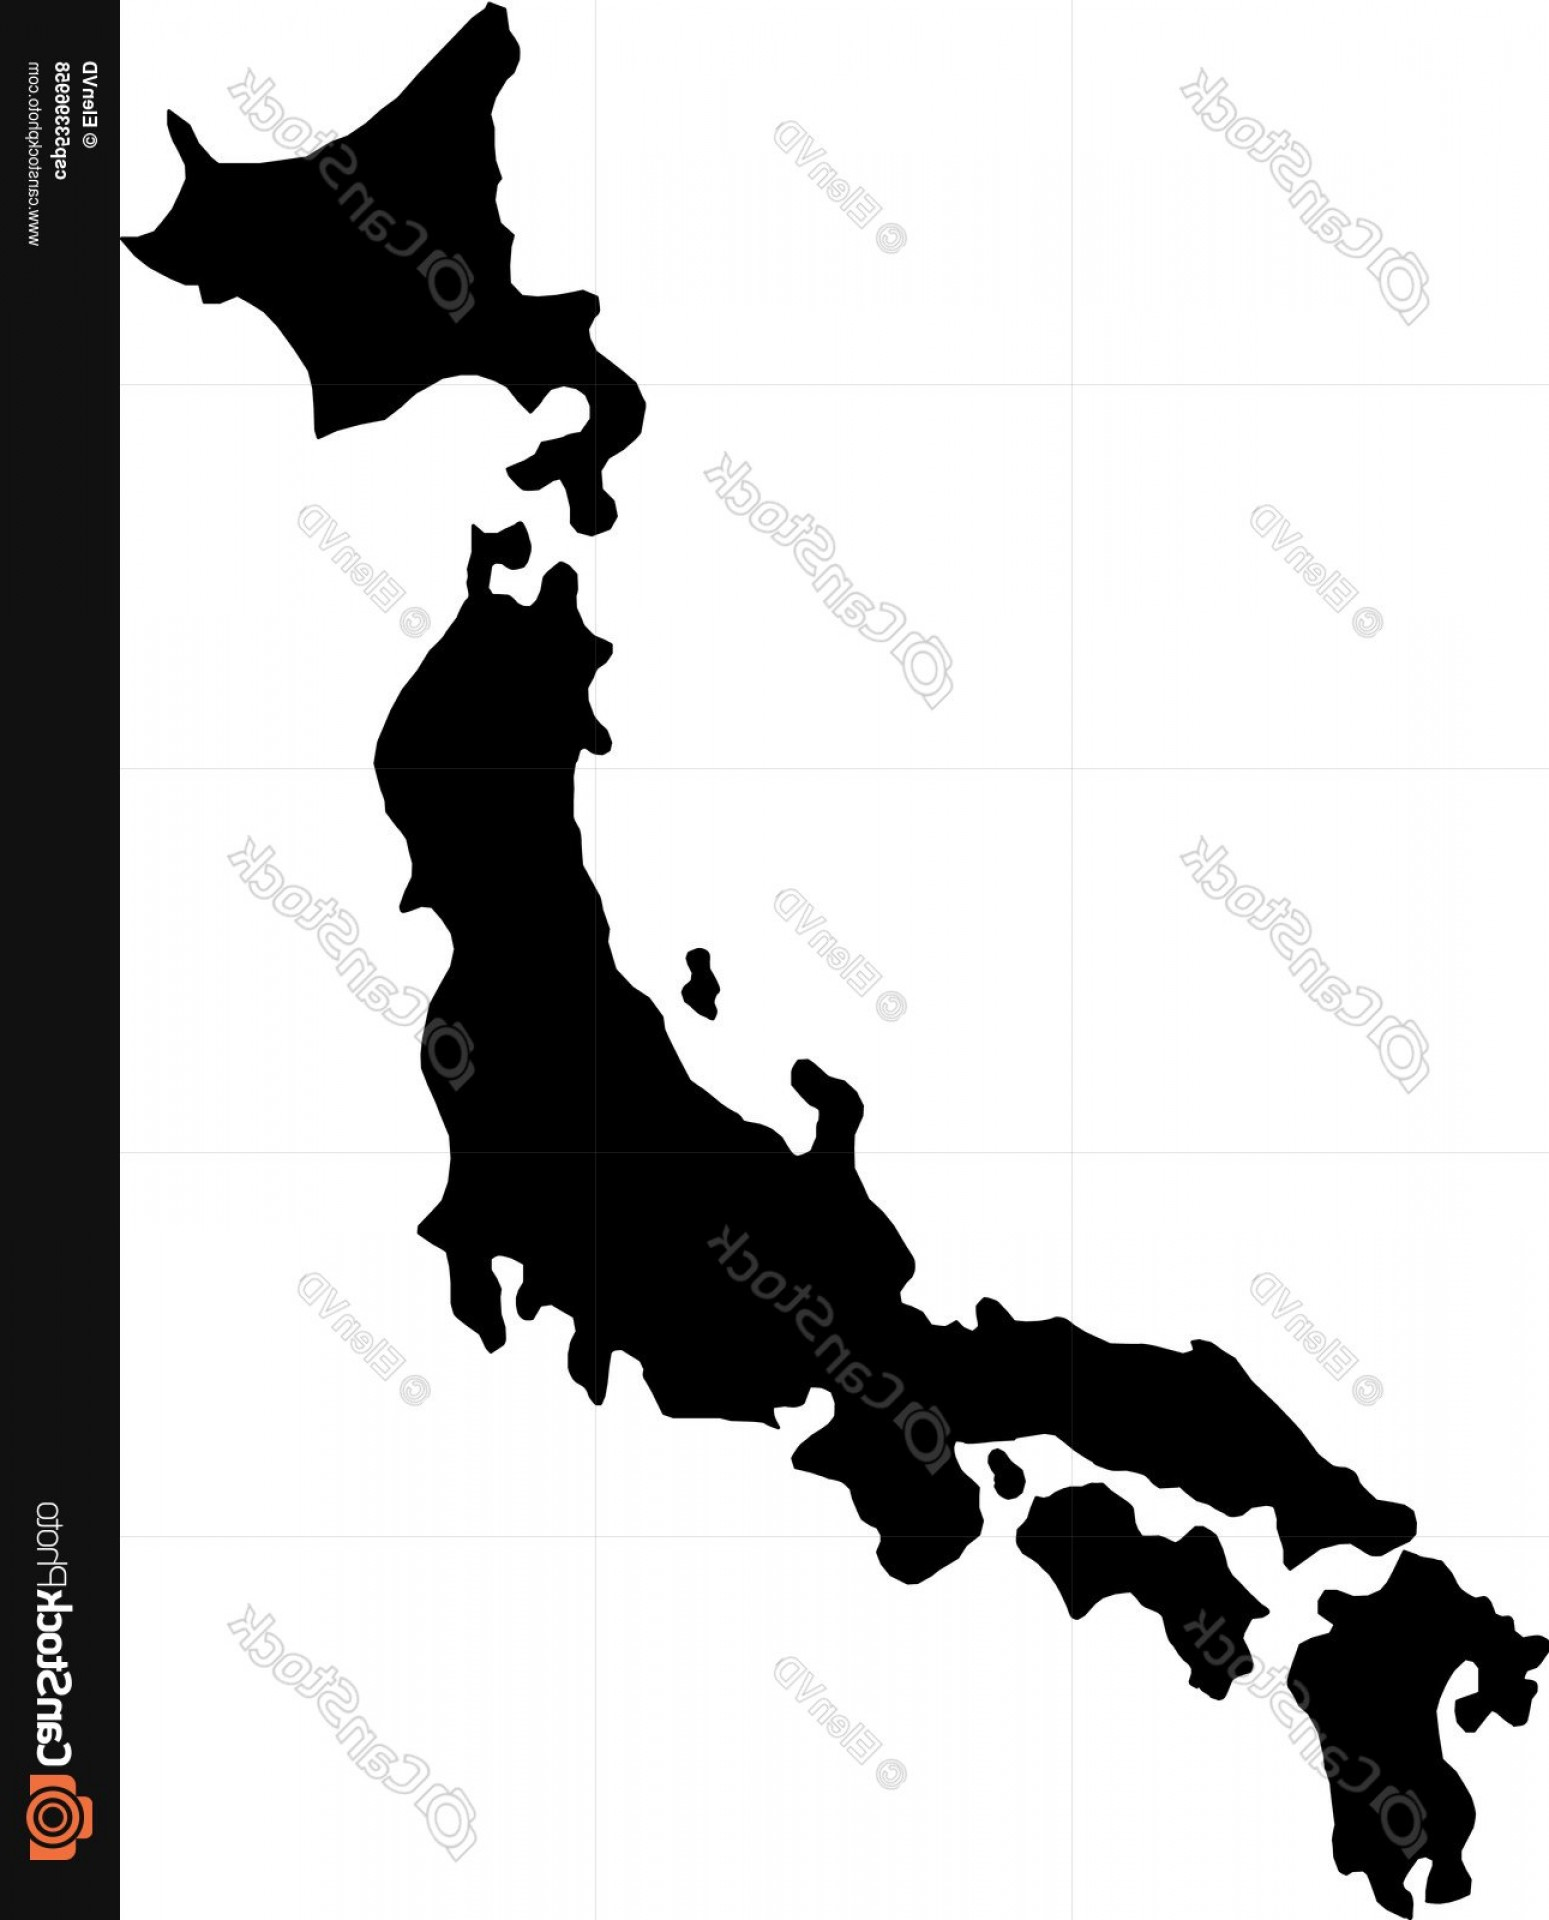 Japan Map Vector: Black Silhouette Country Borders Map Of